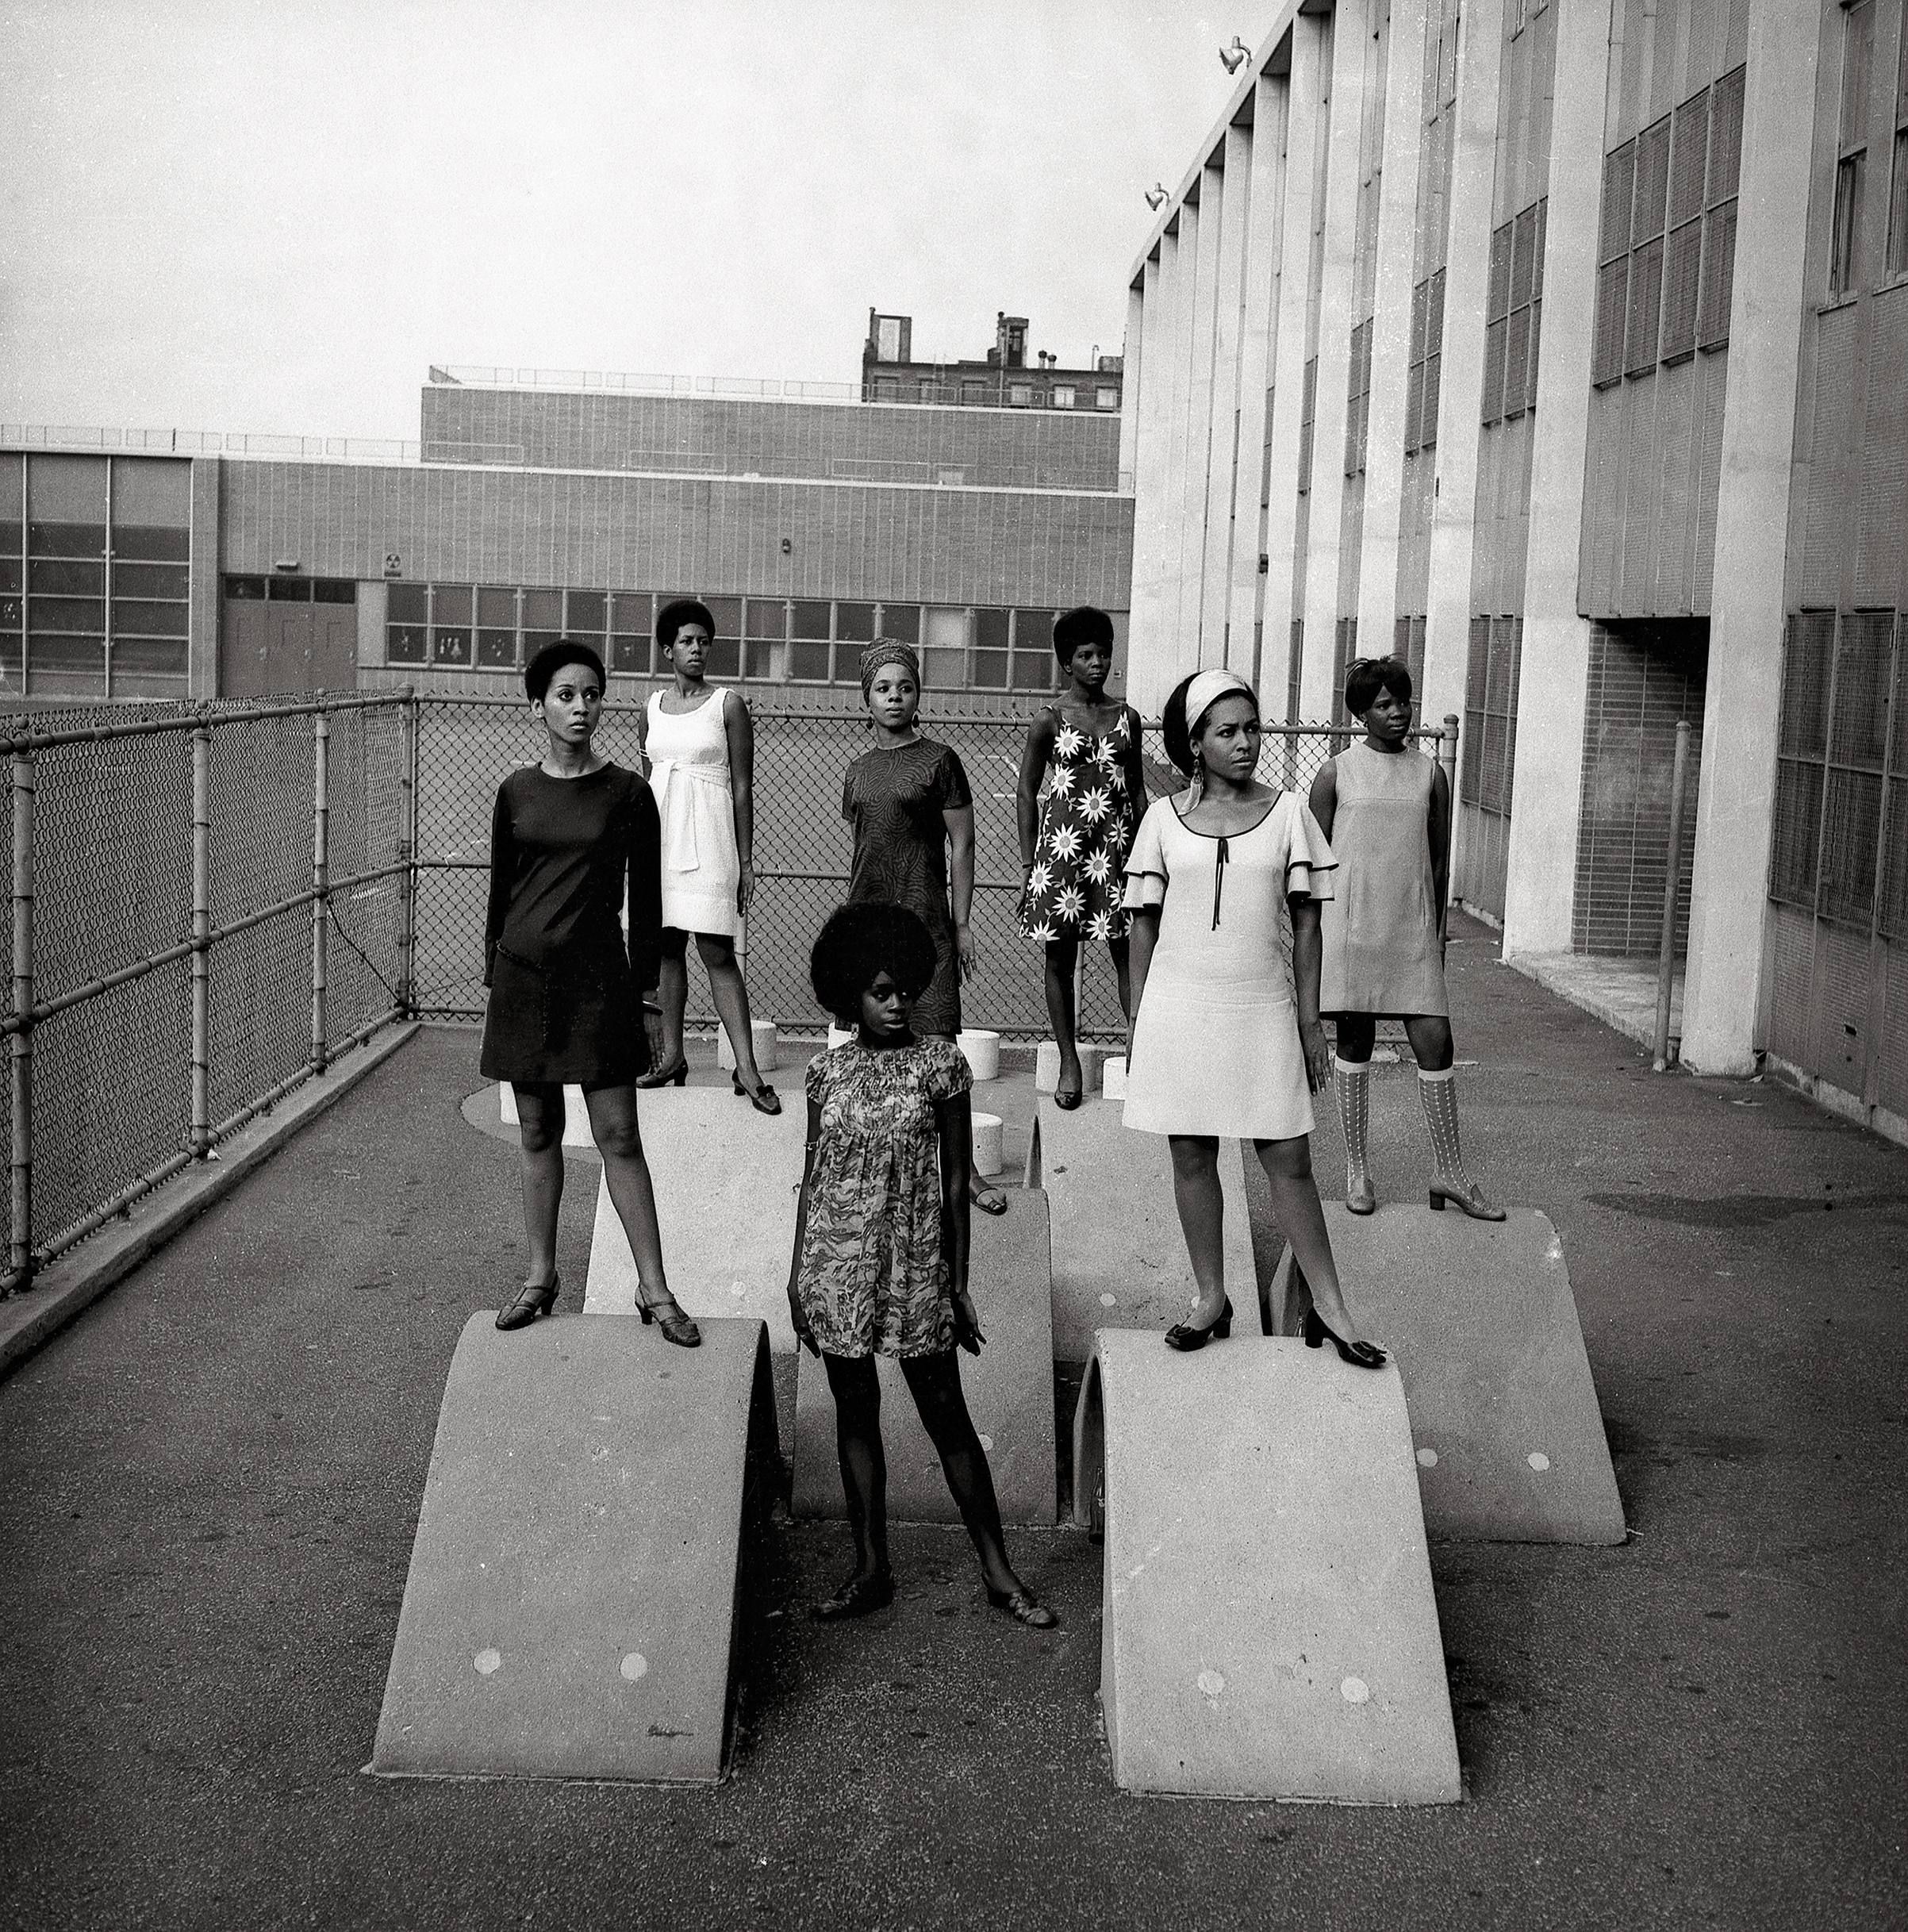 Photo shoot at a school for one of the modeling groups who had begun to embrace natural hairstyles in the 1960s.